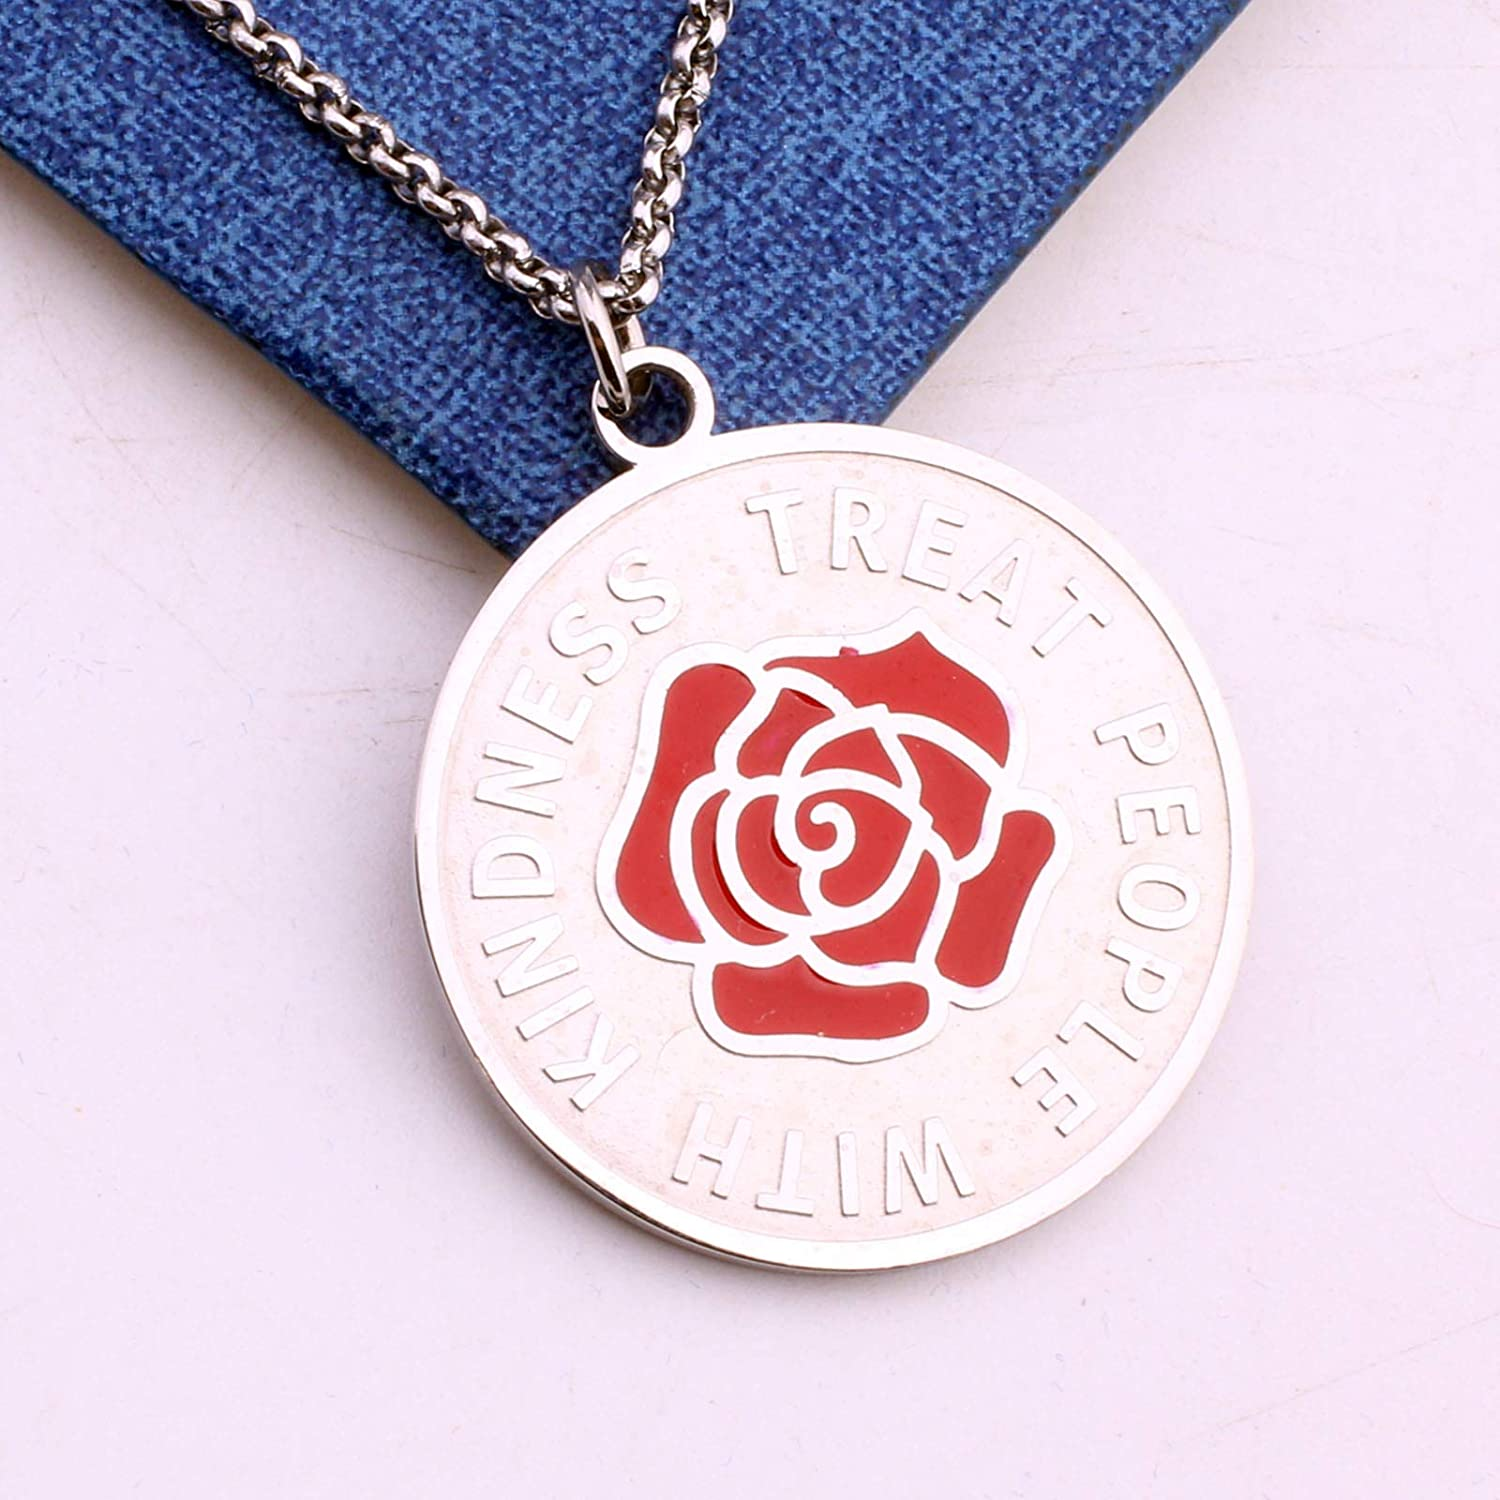 Treat People with Kindness Harry Necklace Jewelry Merch One Direction Gift